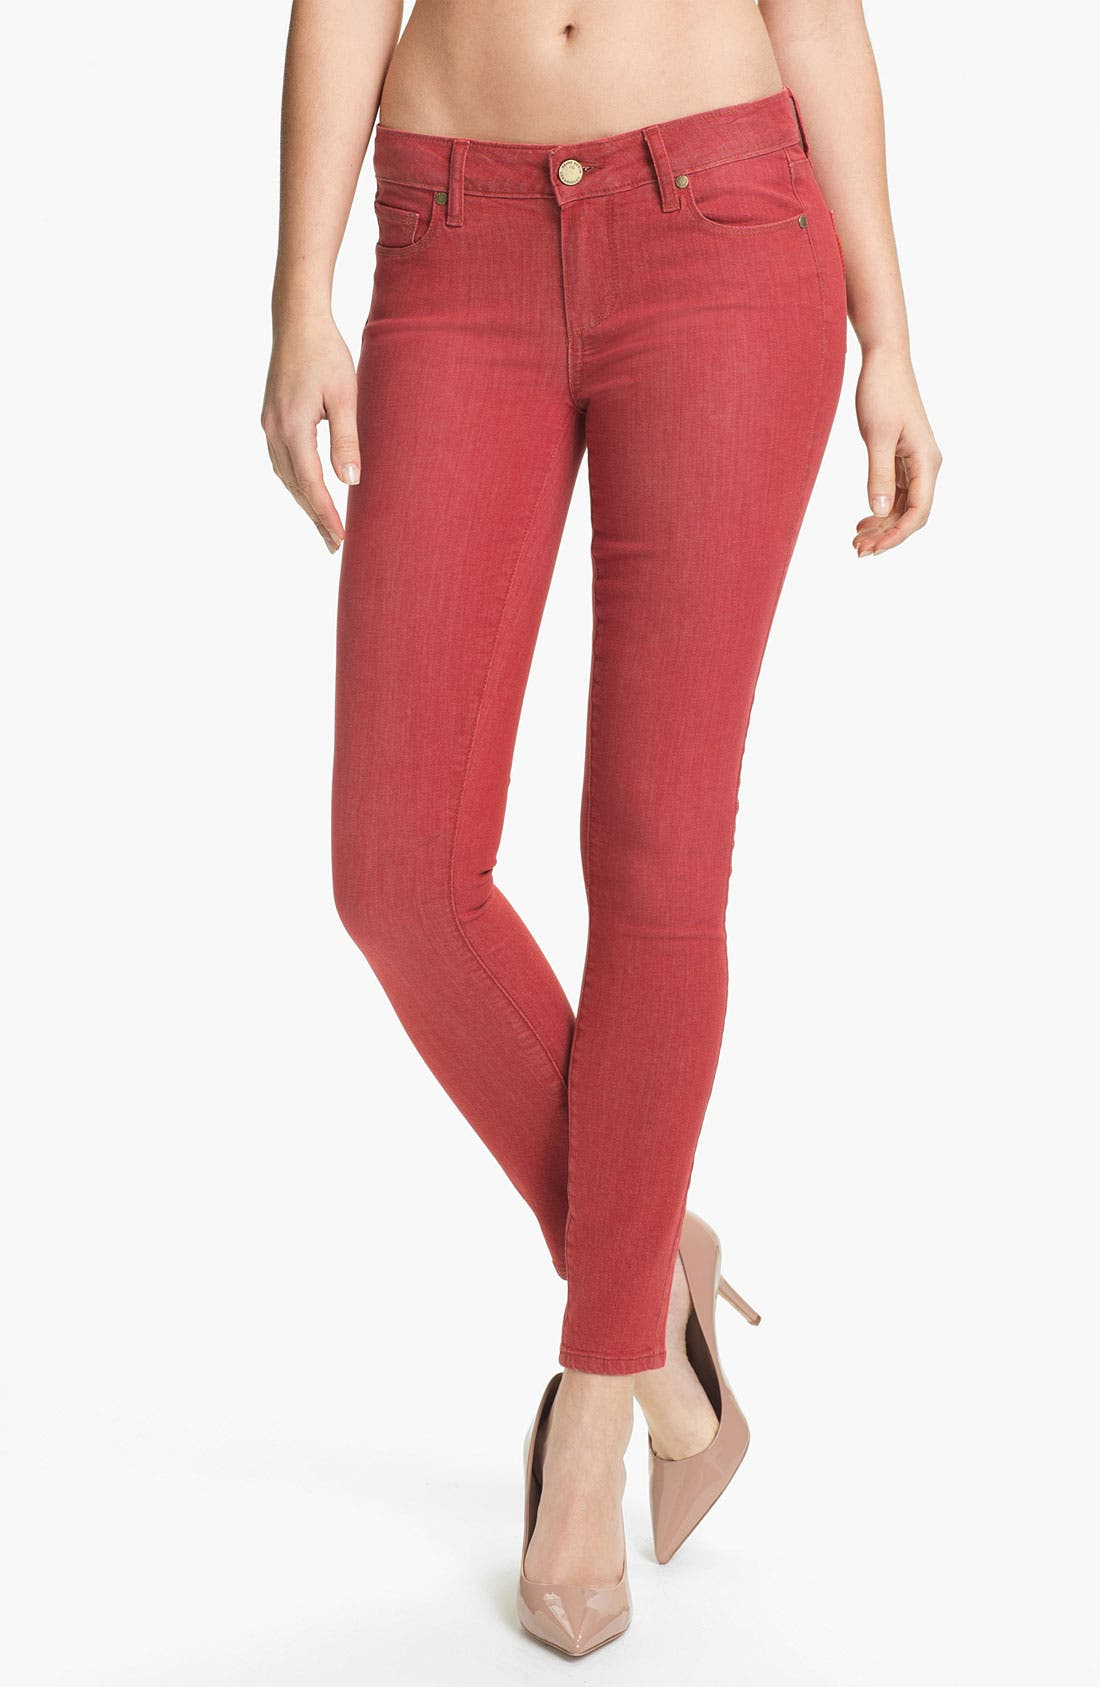 Main Image - Paige Denim 'Verdugo' Skinny Stretch Denim Jeans (Vintage Red)